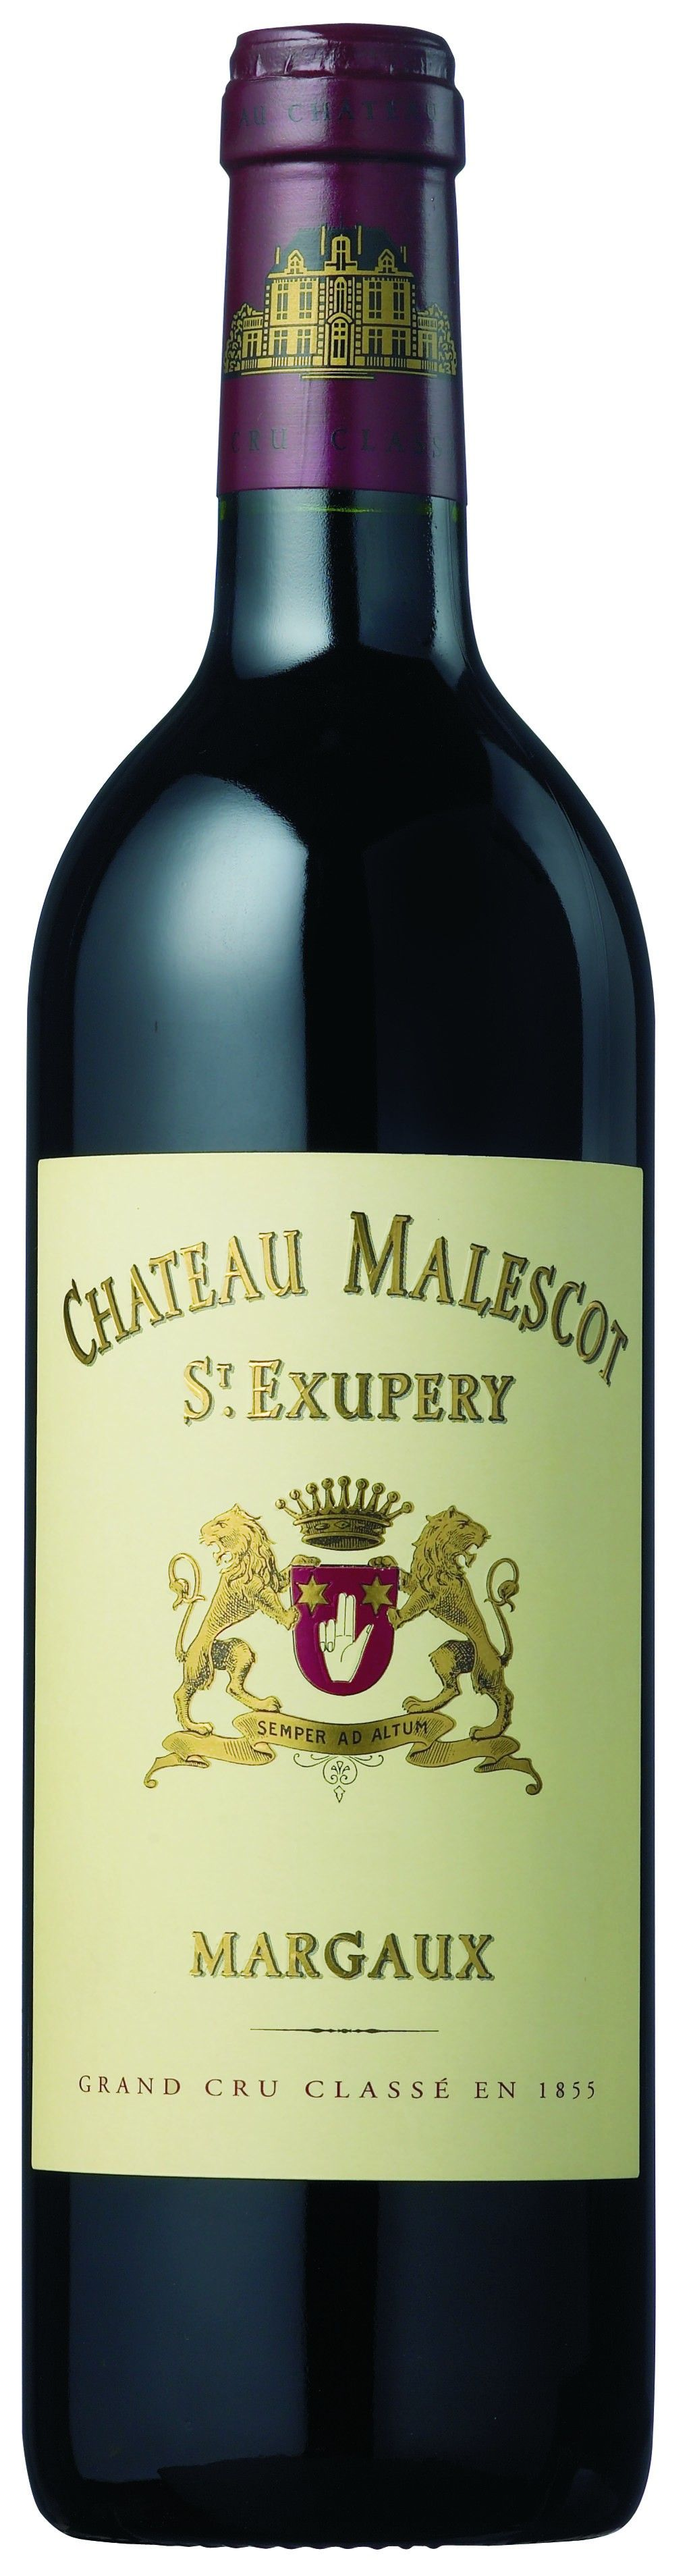 Chateau Malescot-St-Exupery, 2005